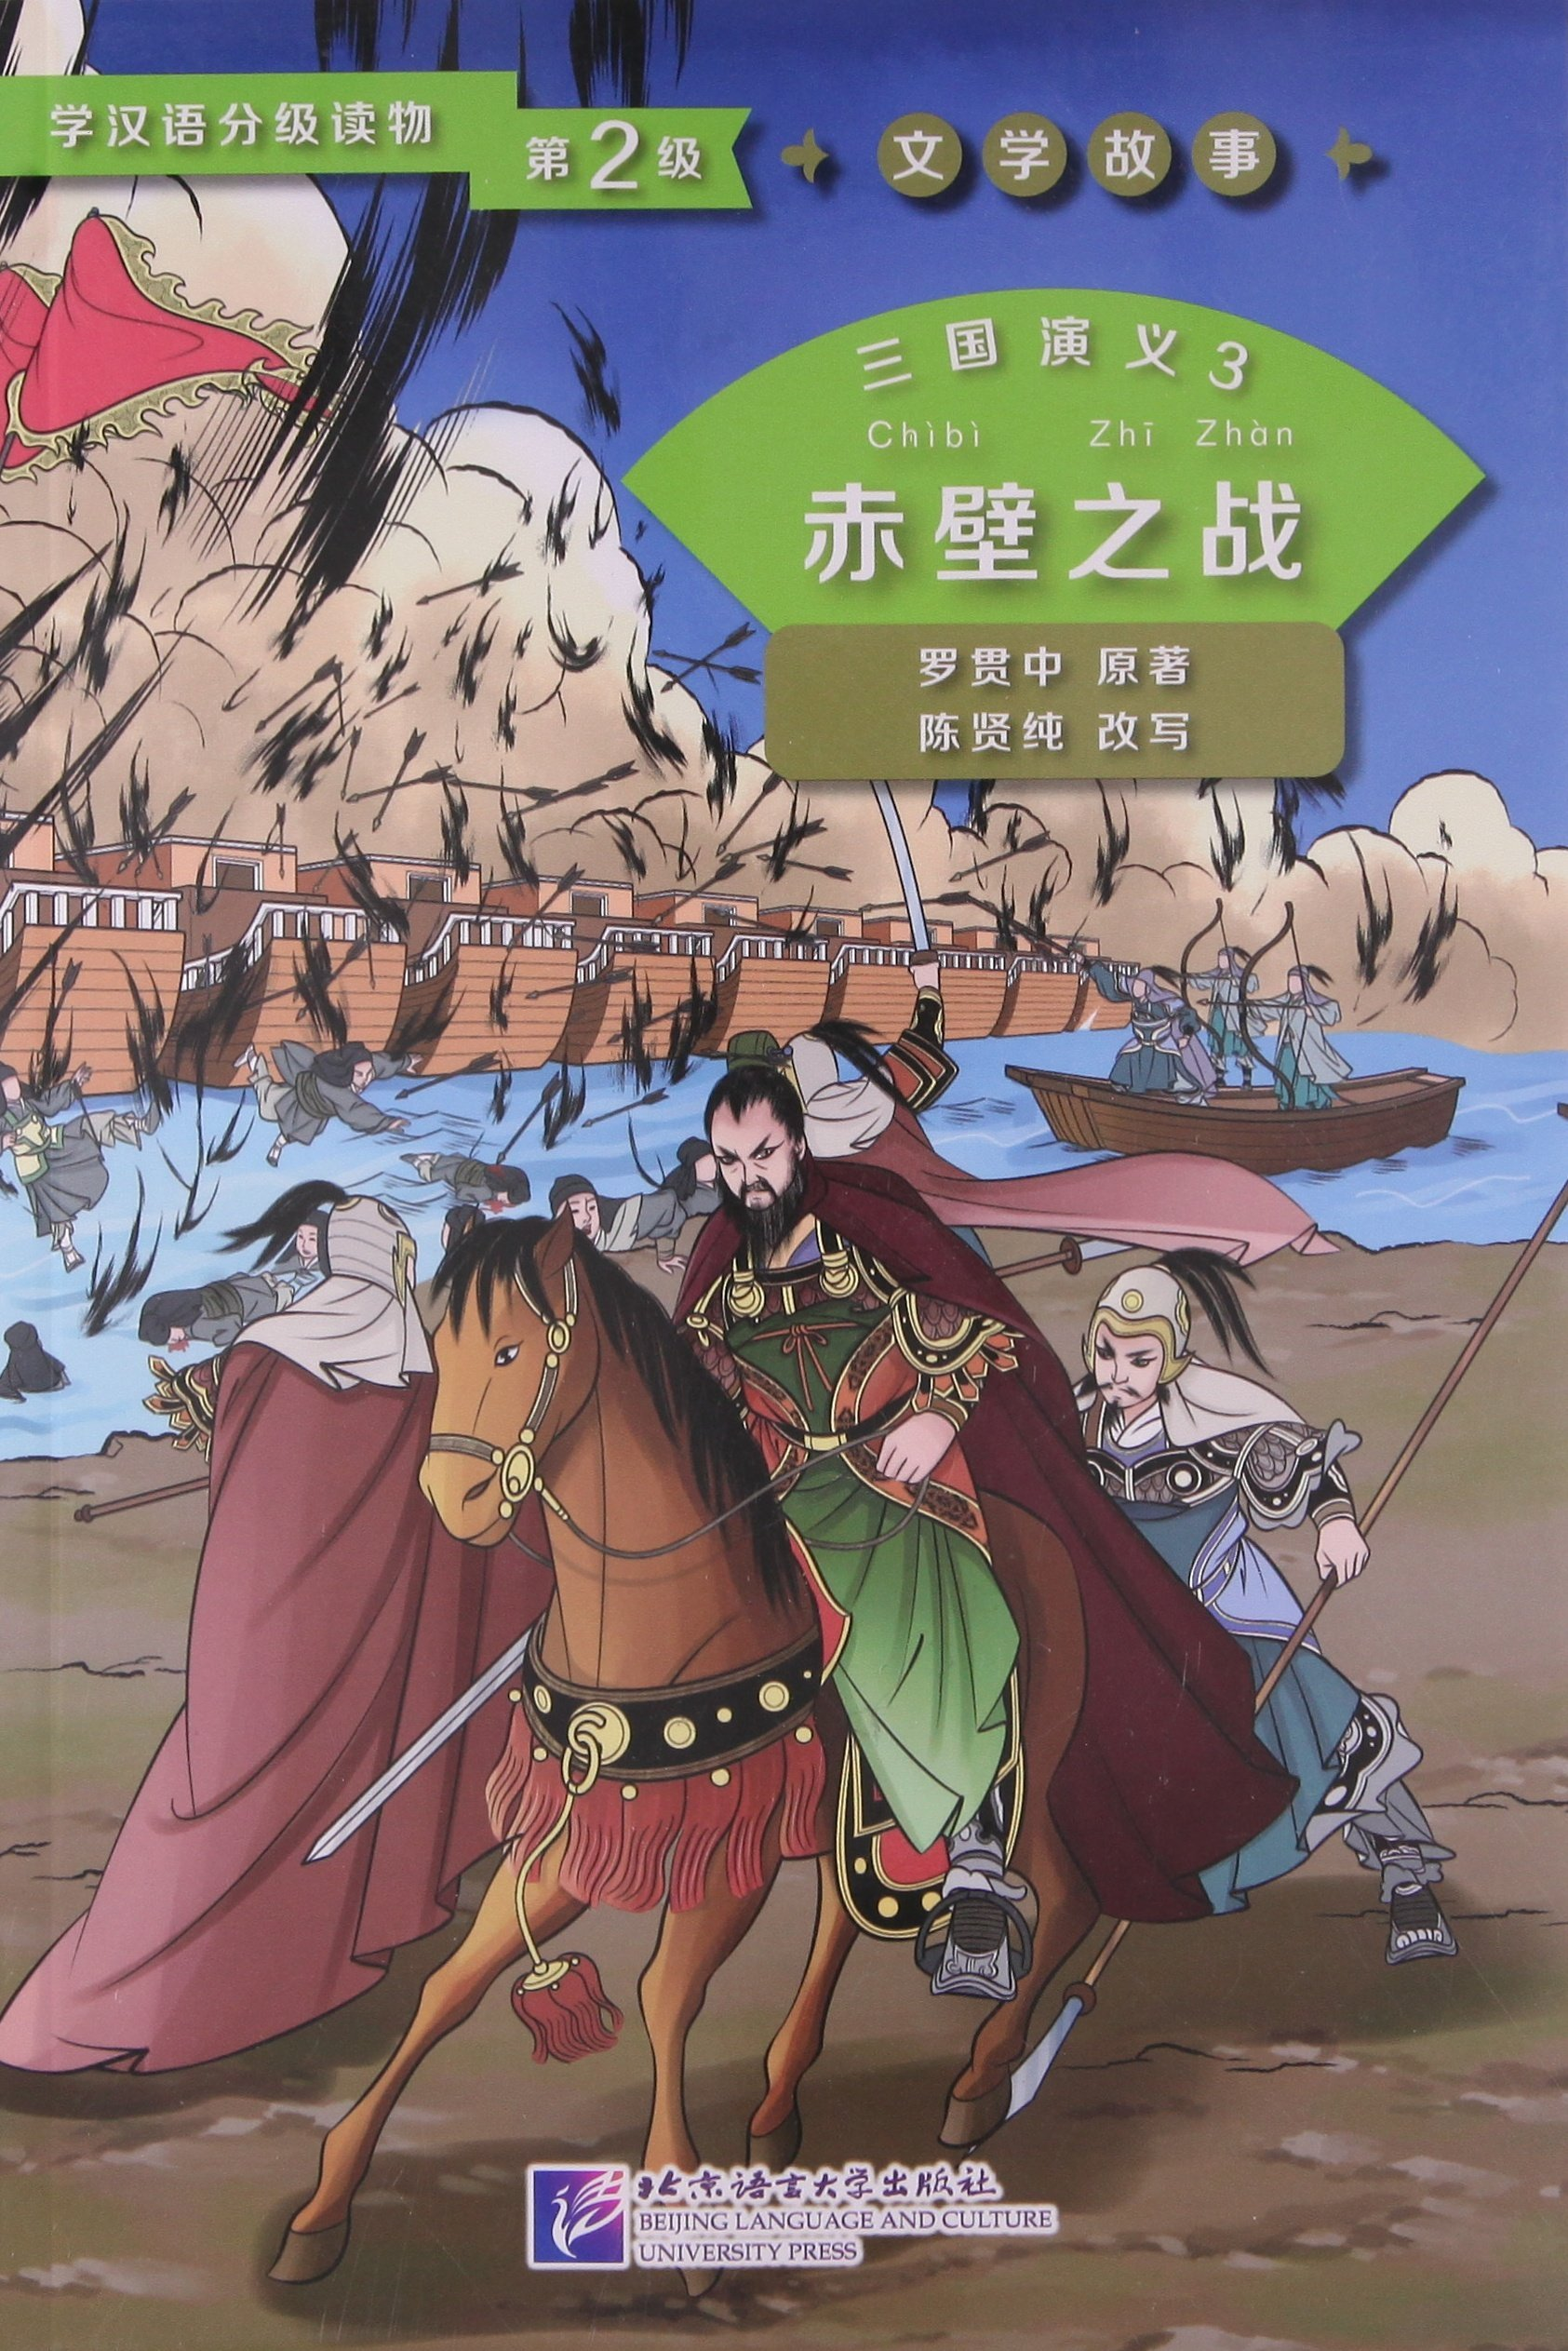 Three Kingdoms 3: Battle of Chibi (Level 2) - Graded Readers for Chinese Language Learners (Literary Stories)